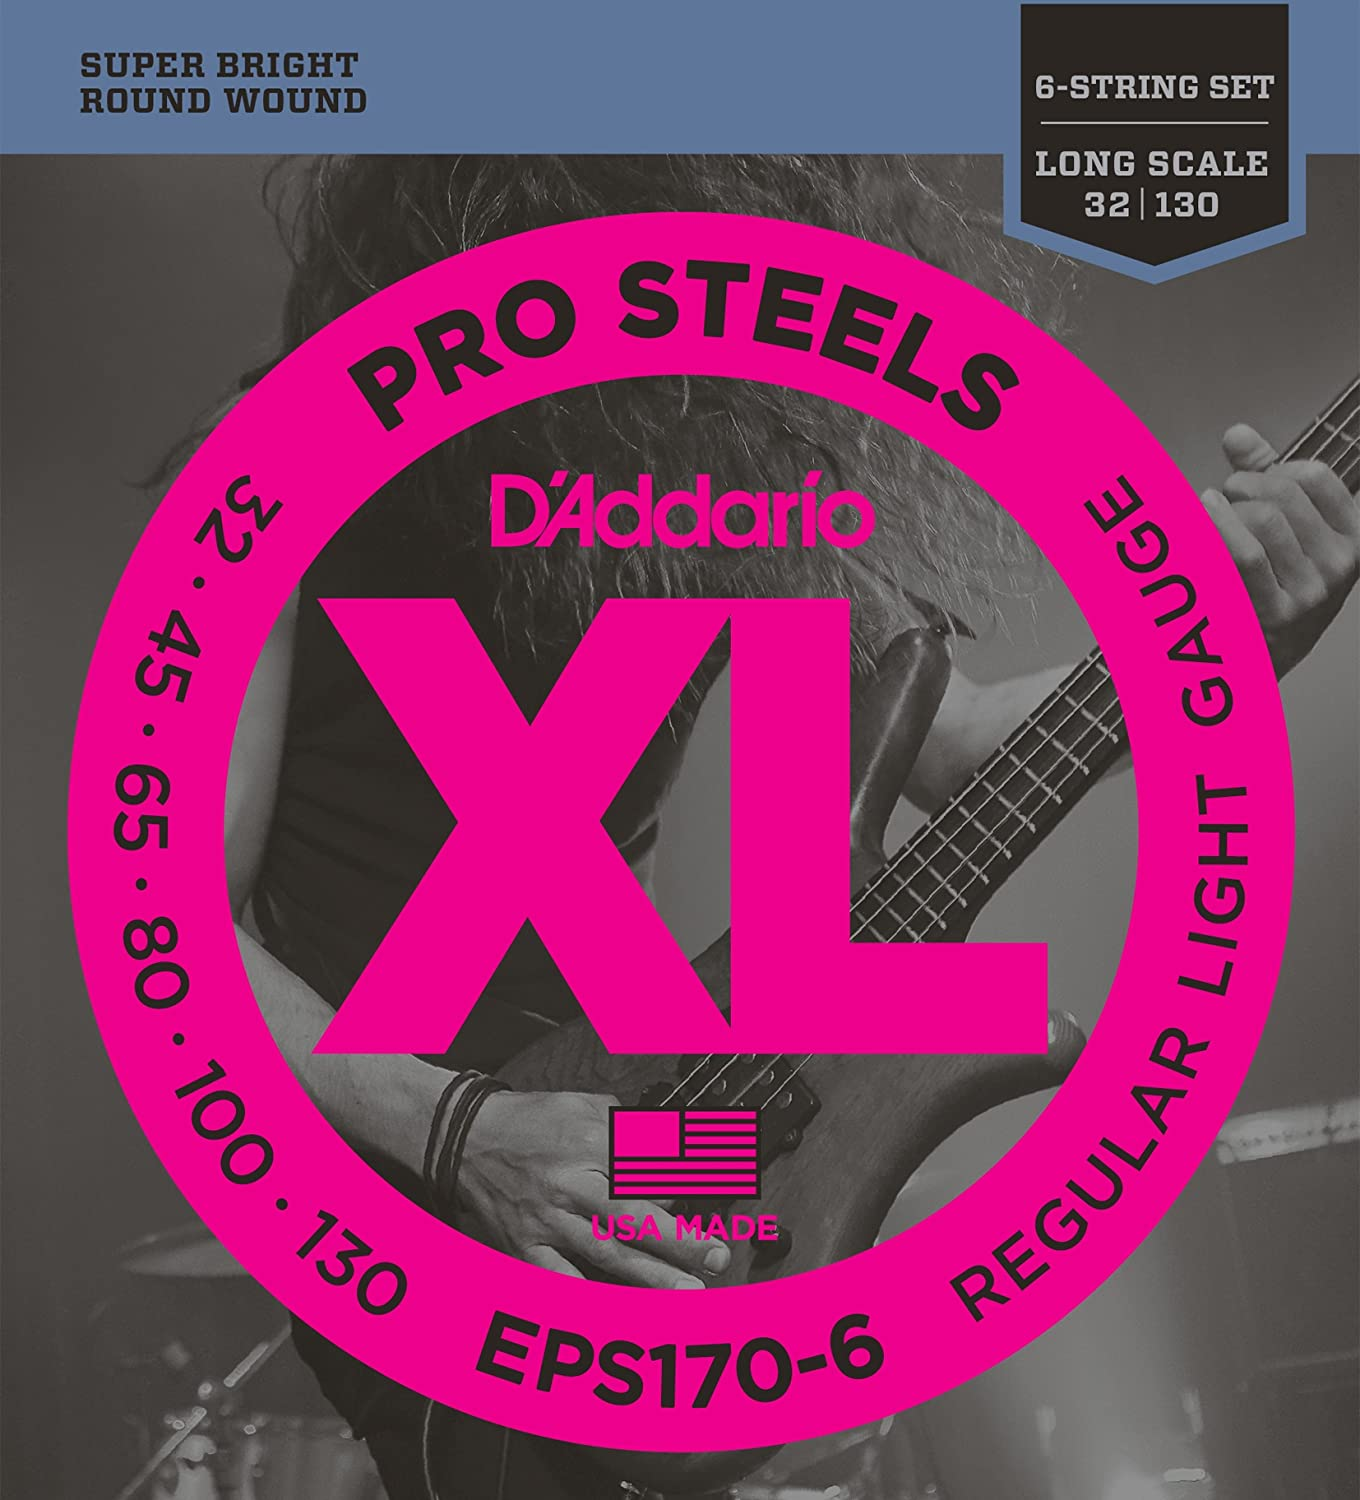 Long Scale DAddario EPS170-6 6-String ProSteels Bass Guitar Strings Light 32|130